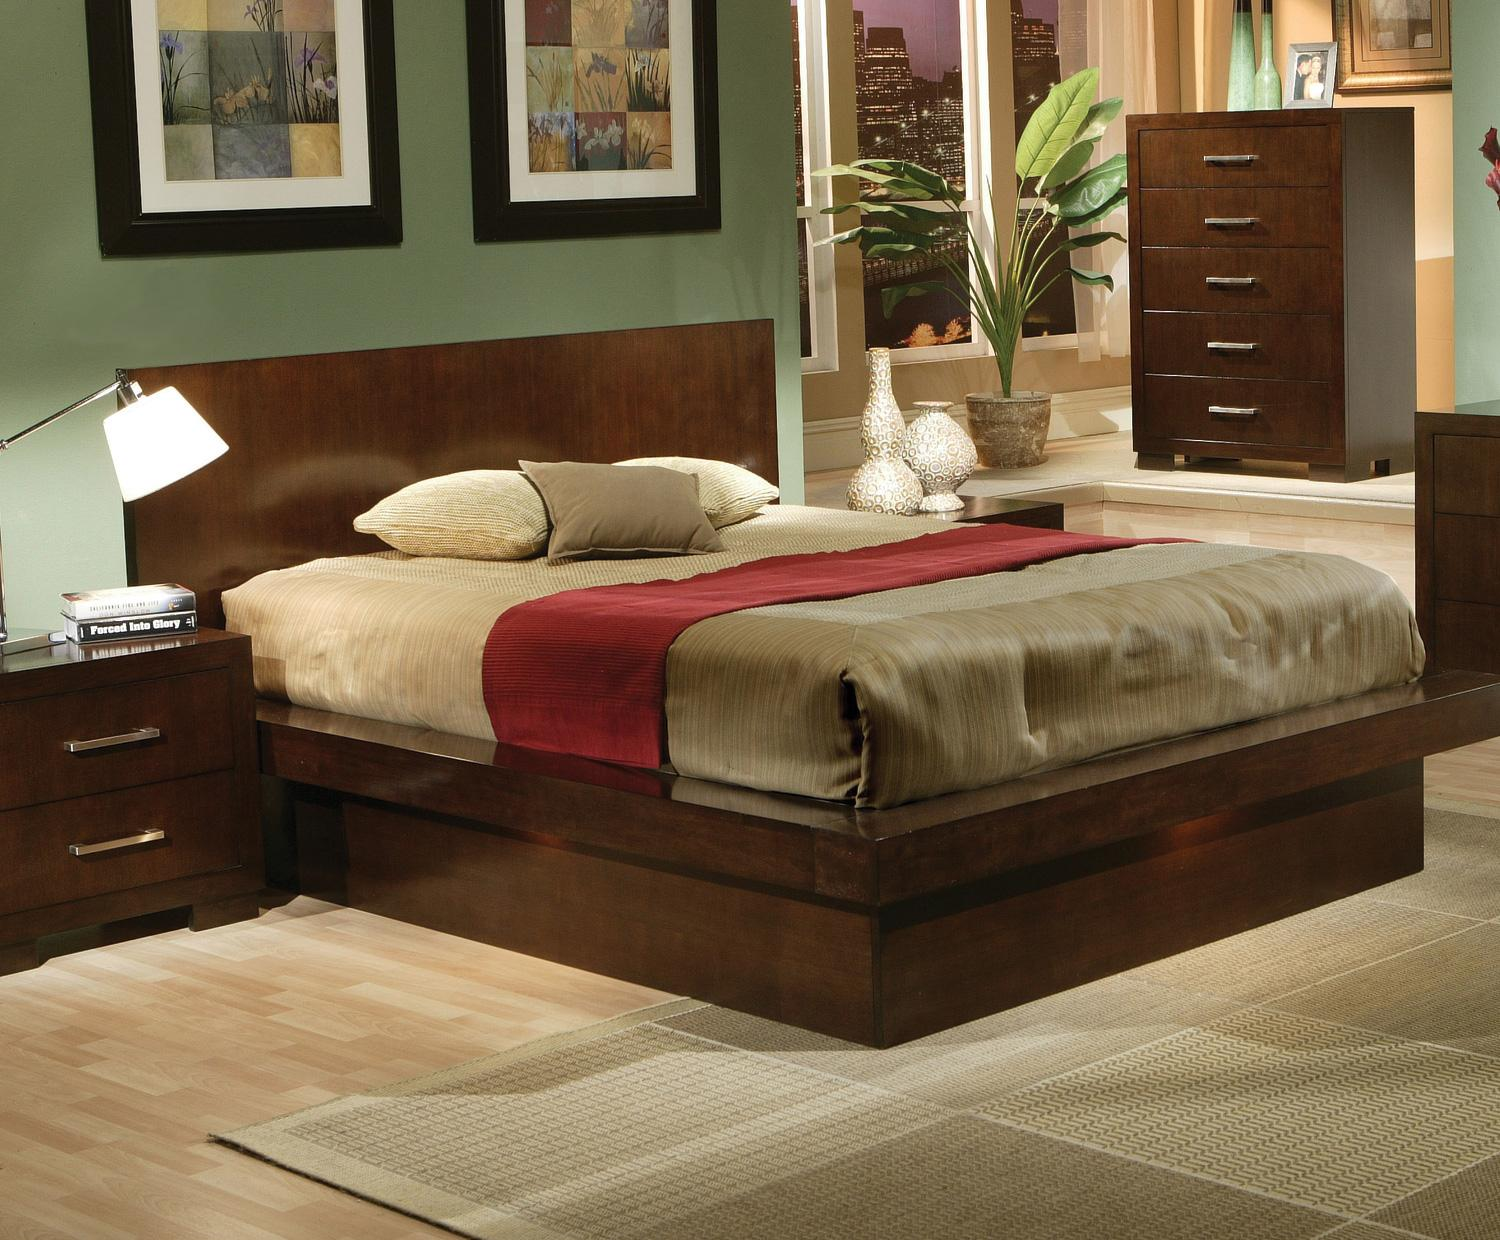 Jessica Queen Platform Bed With Rail Seating And Lights By